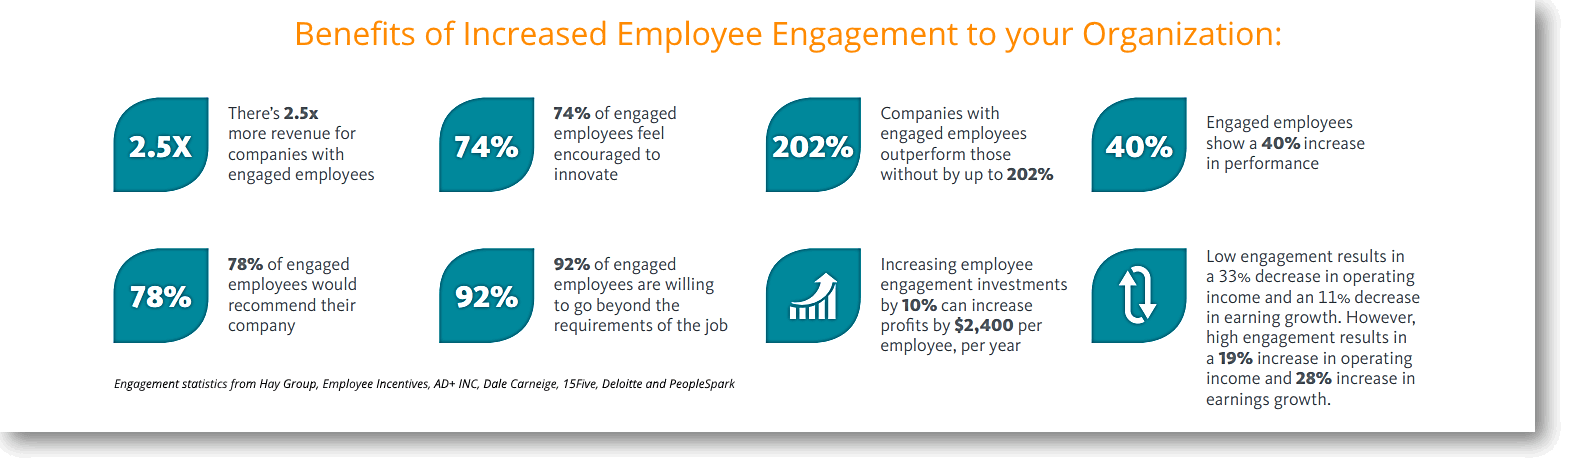 bettering_employee_engagement_benefits